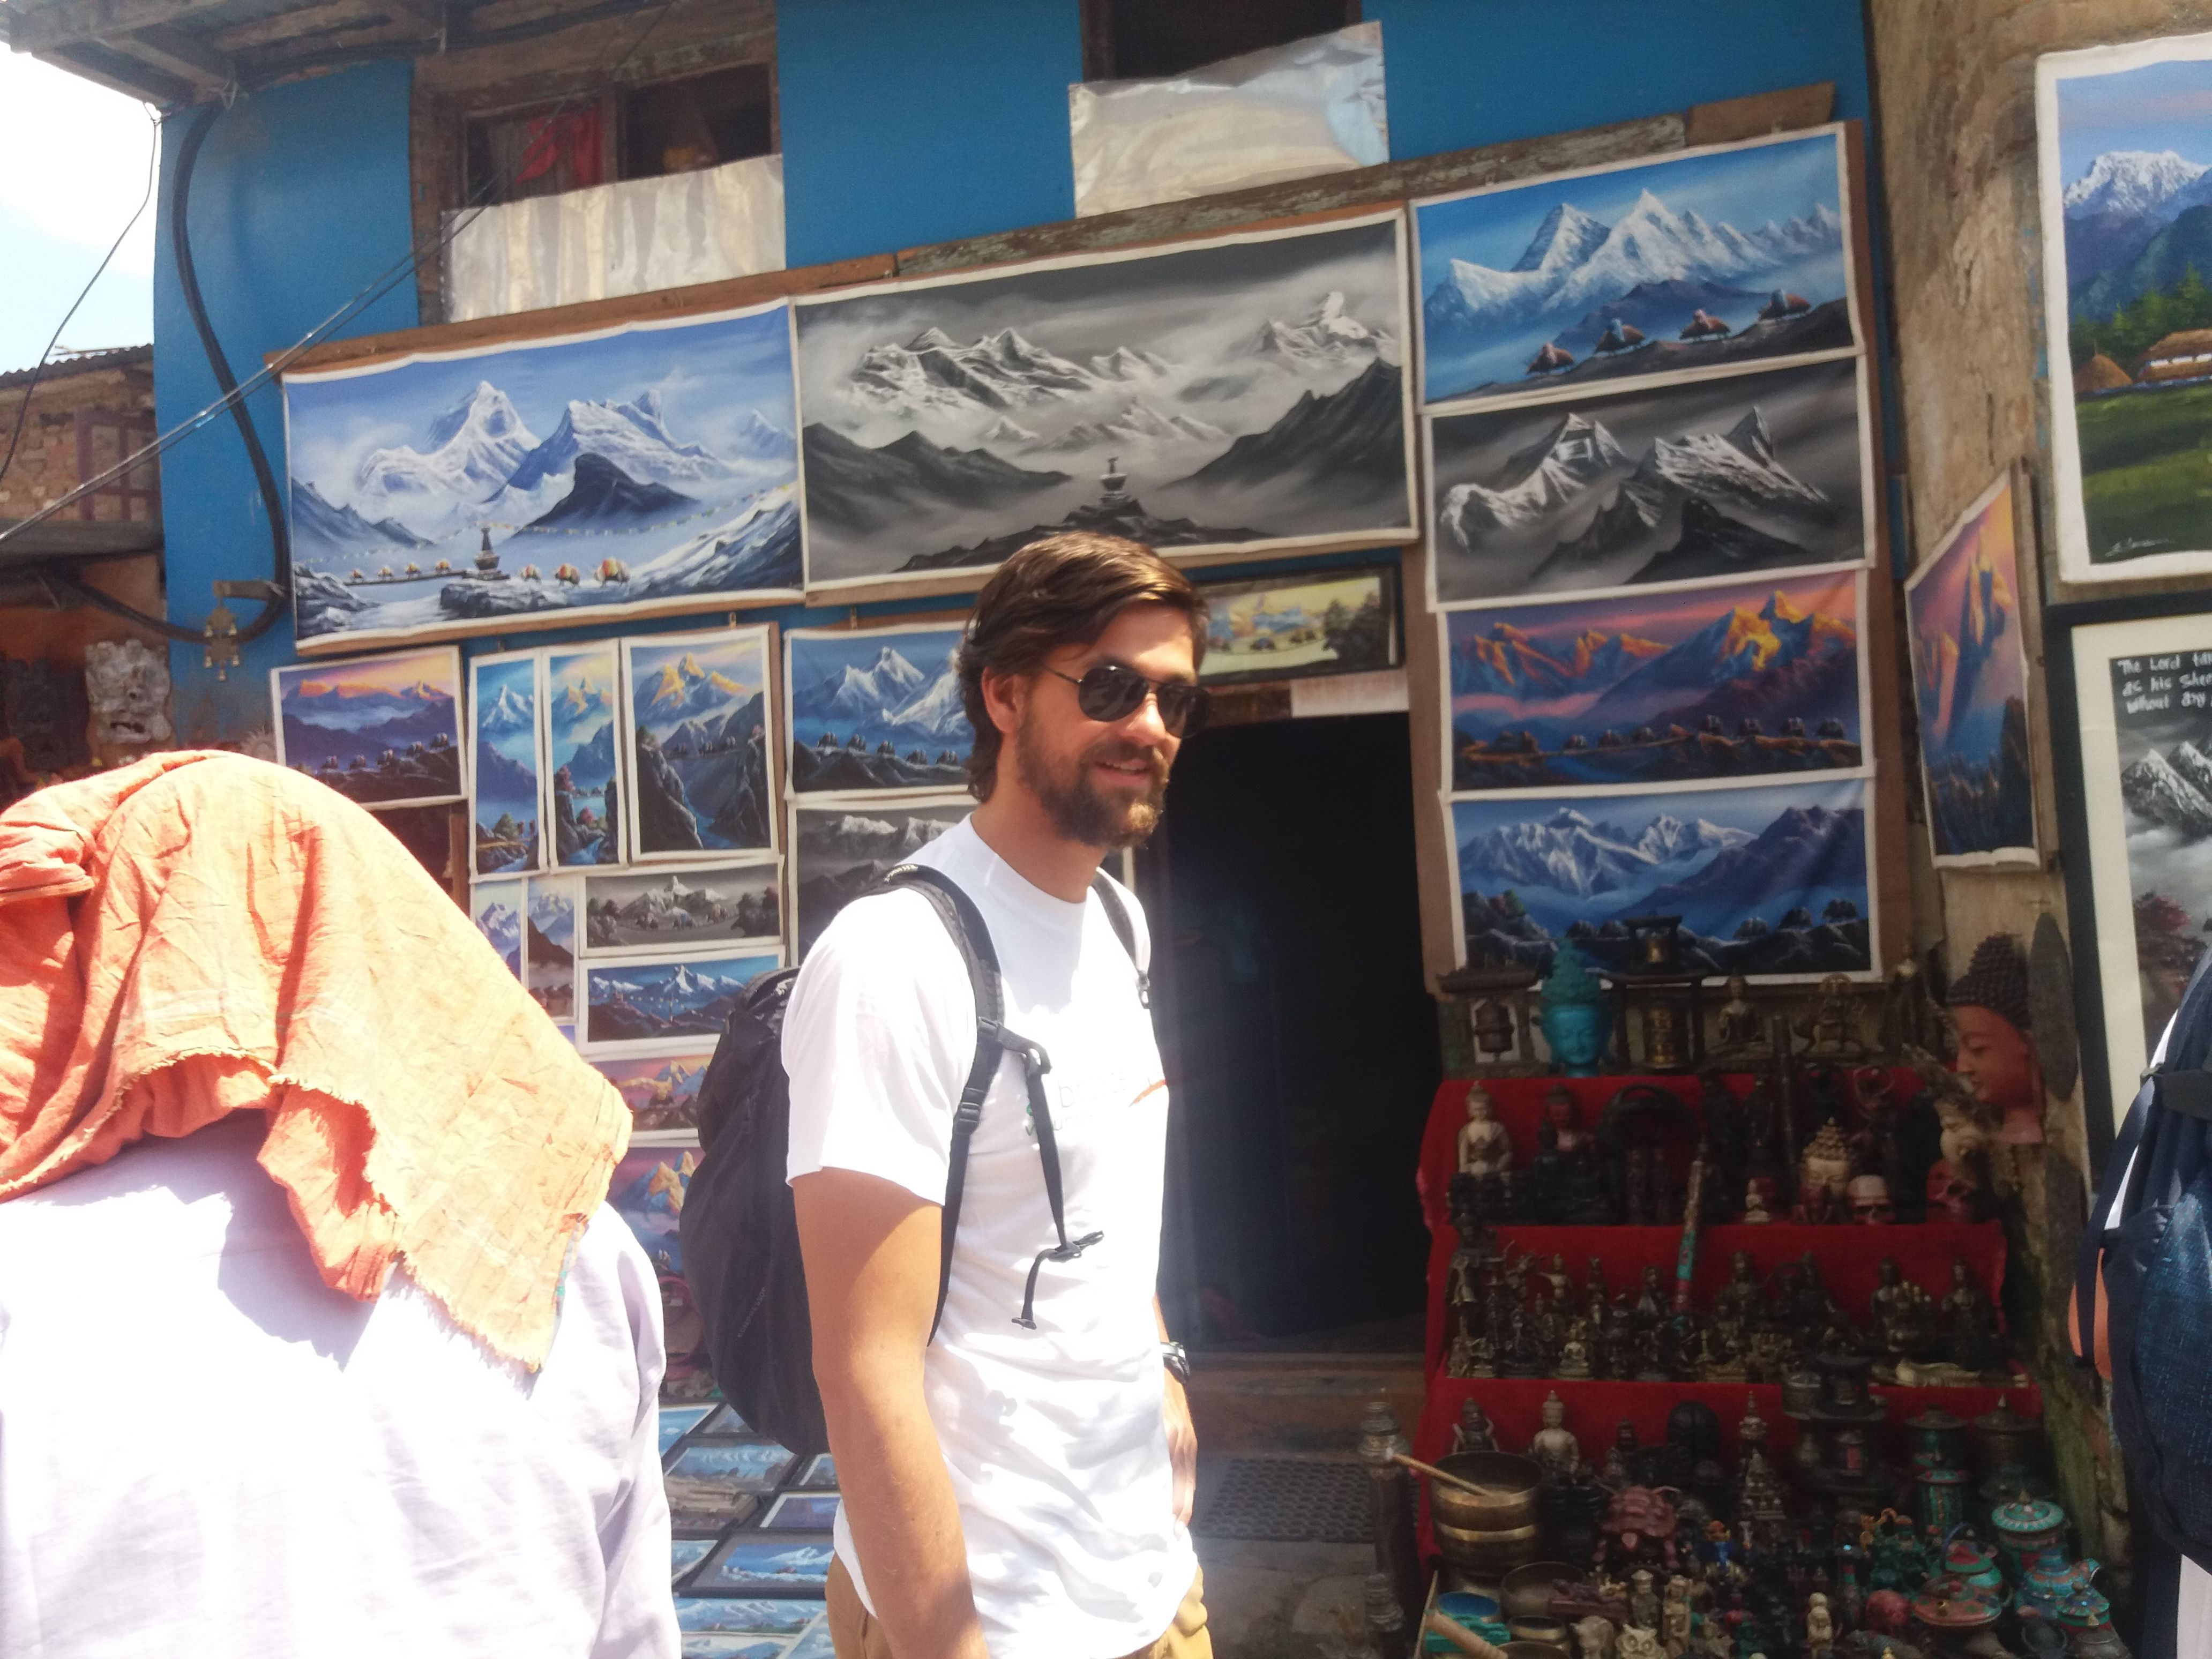 Volunteer nepal kathmandu brian strzelecki medical program recently recently i have have completed the training and testing required to get my us emt certification in june 2017 since having completed my emt certification 1betcityfo Gallery